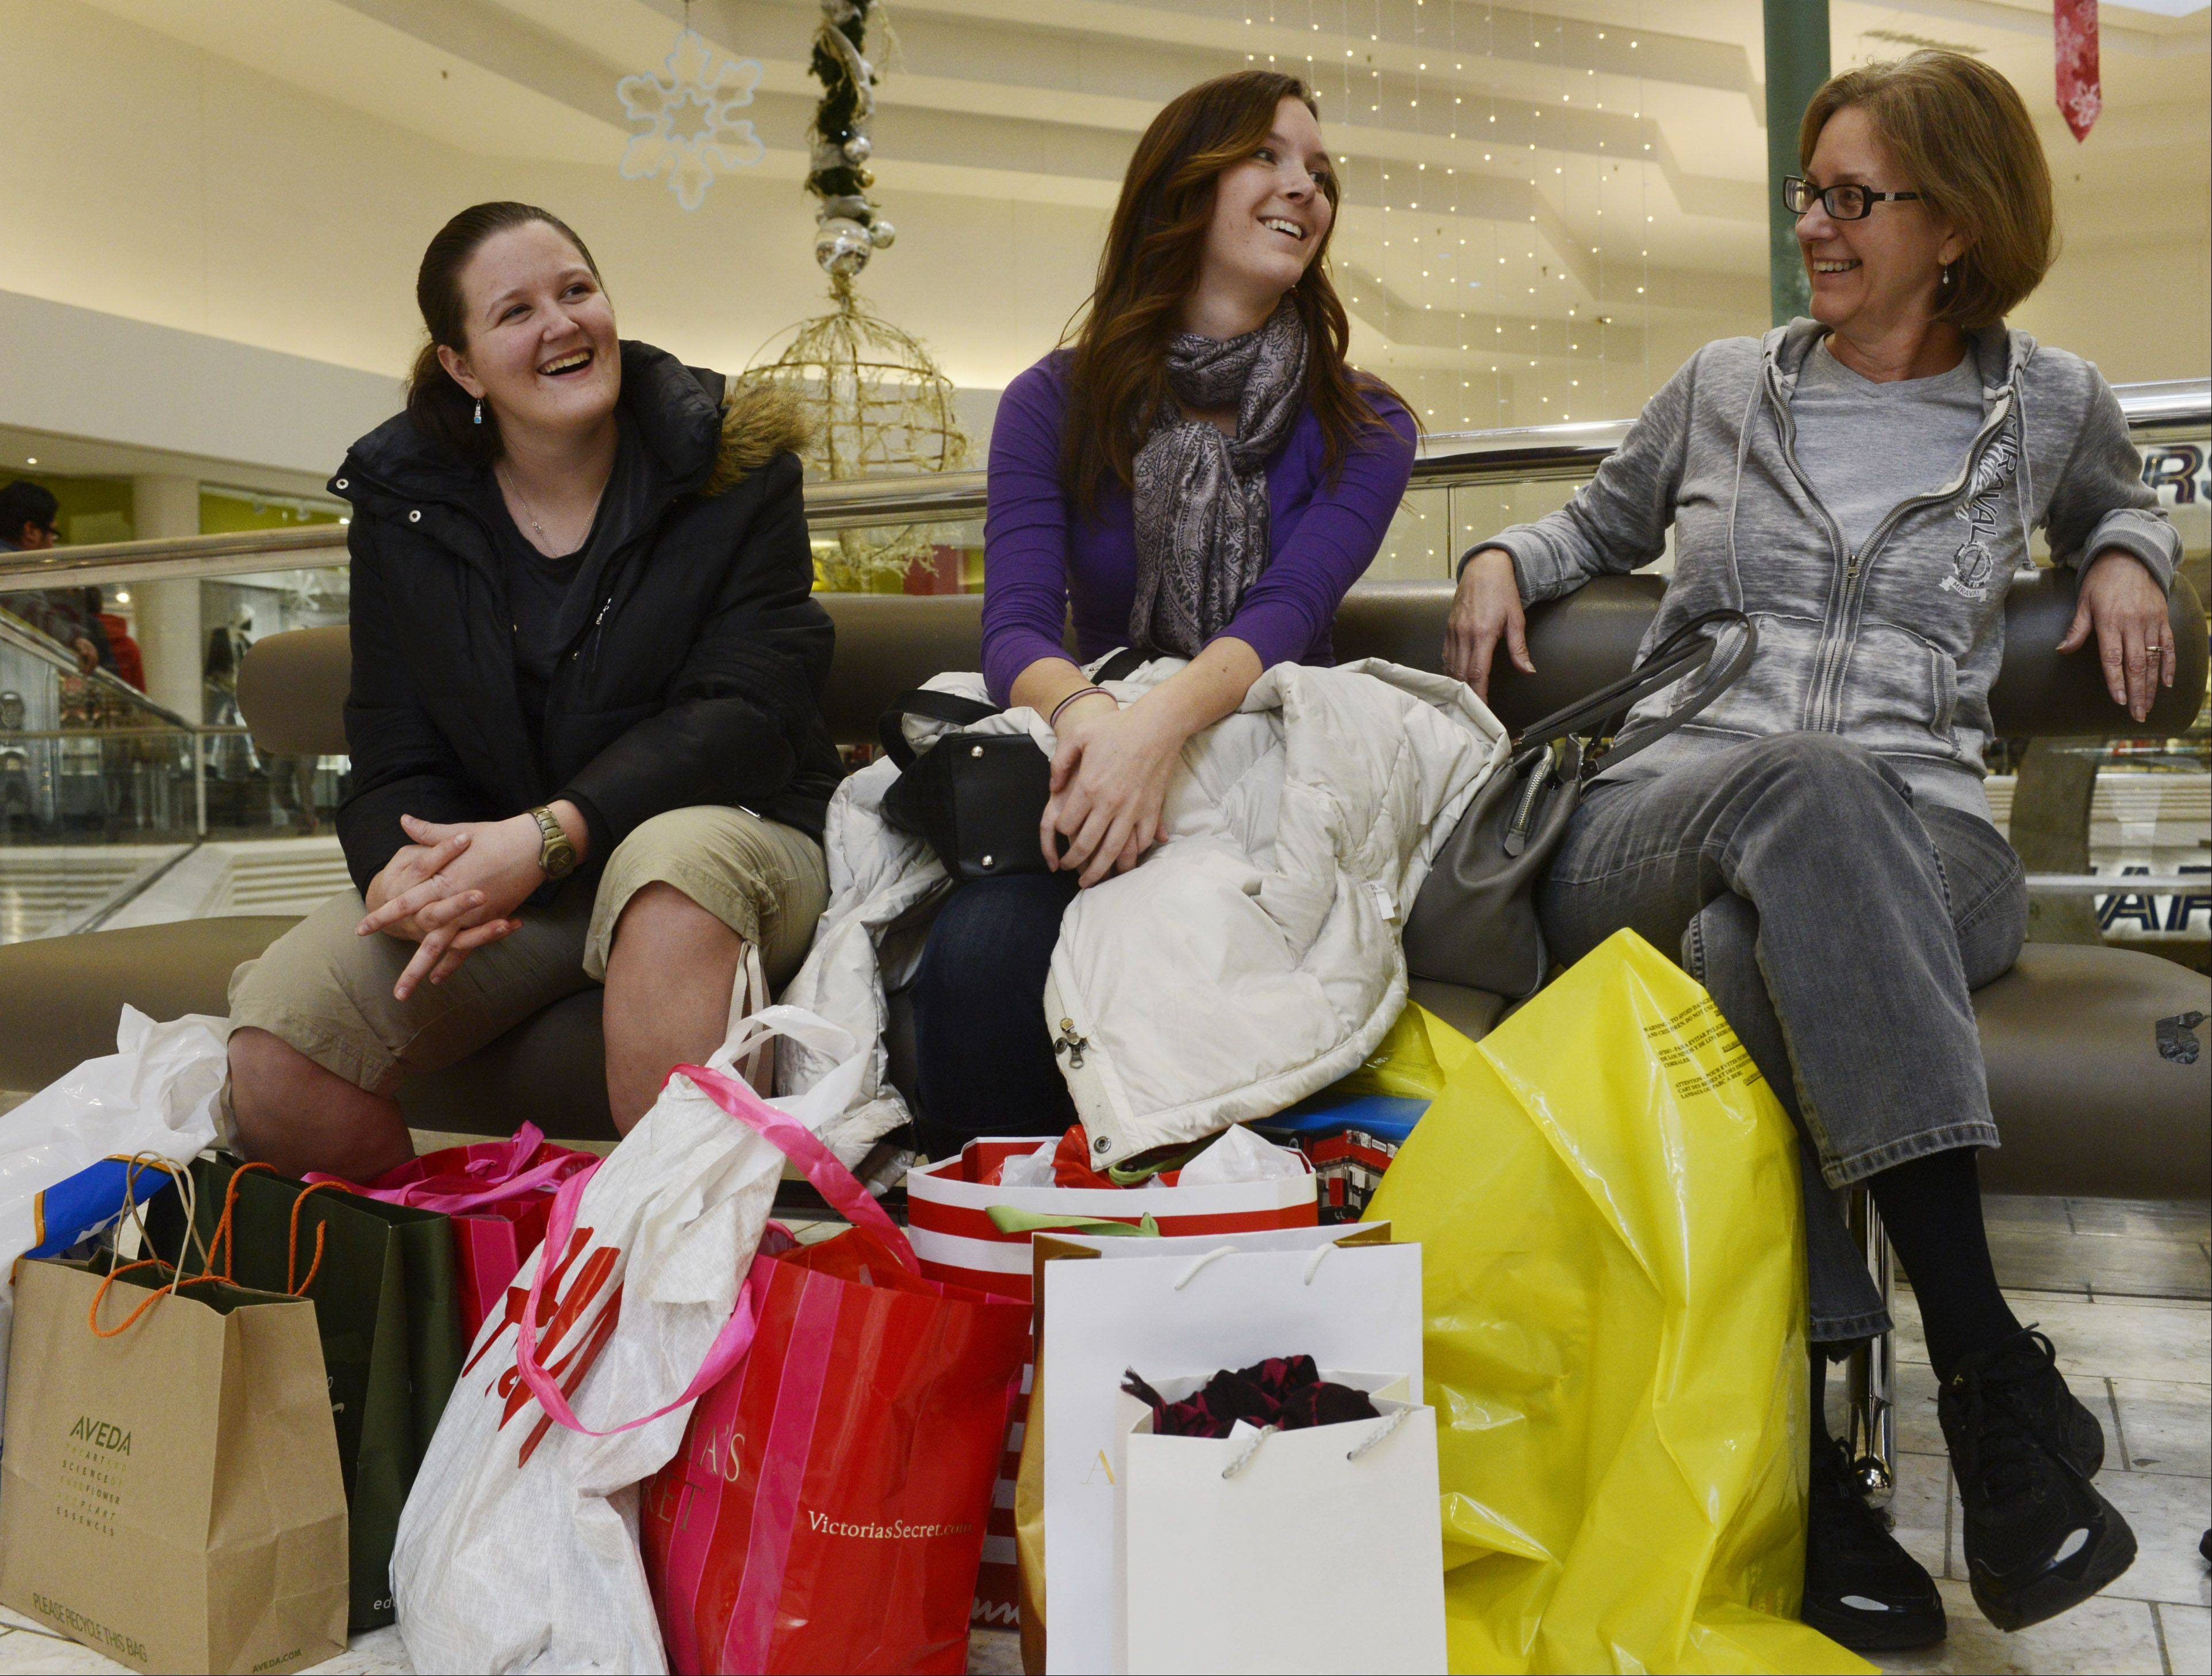 Cally Parkinson, right, of Long Grove relaxes after bargain hunting on Black Friday with her daughter, Charlotte, of Chicago and her niece, K.C. Steussy, who lives outside Indianapolis, Friday at Woodfield Mall in Schaumburg.